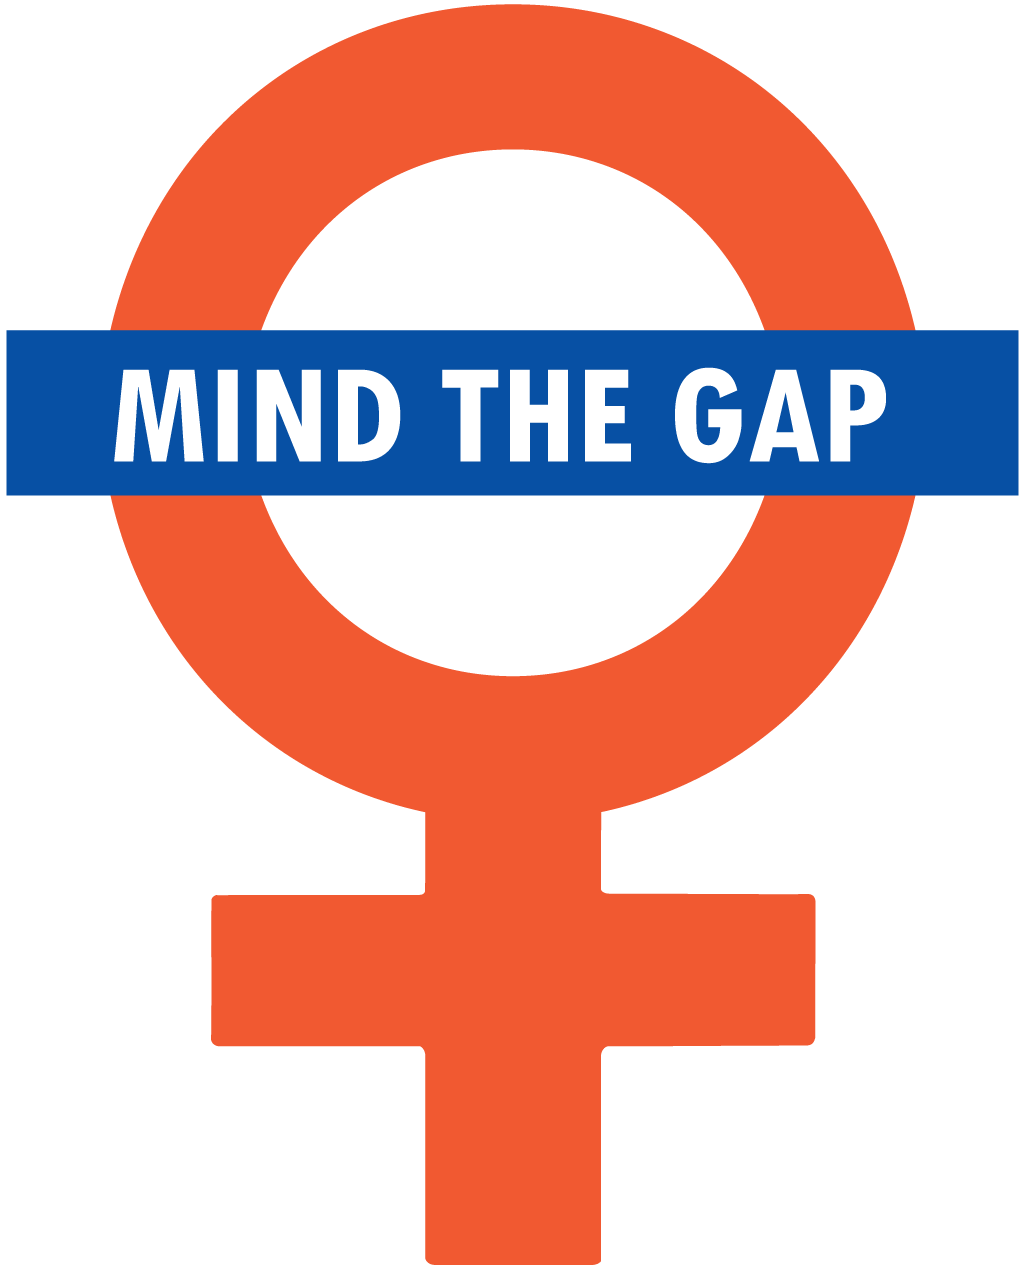 Mind_the_gap1.png